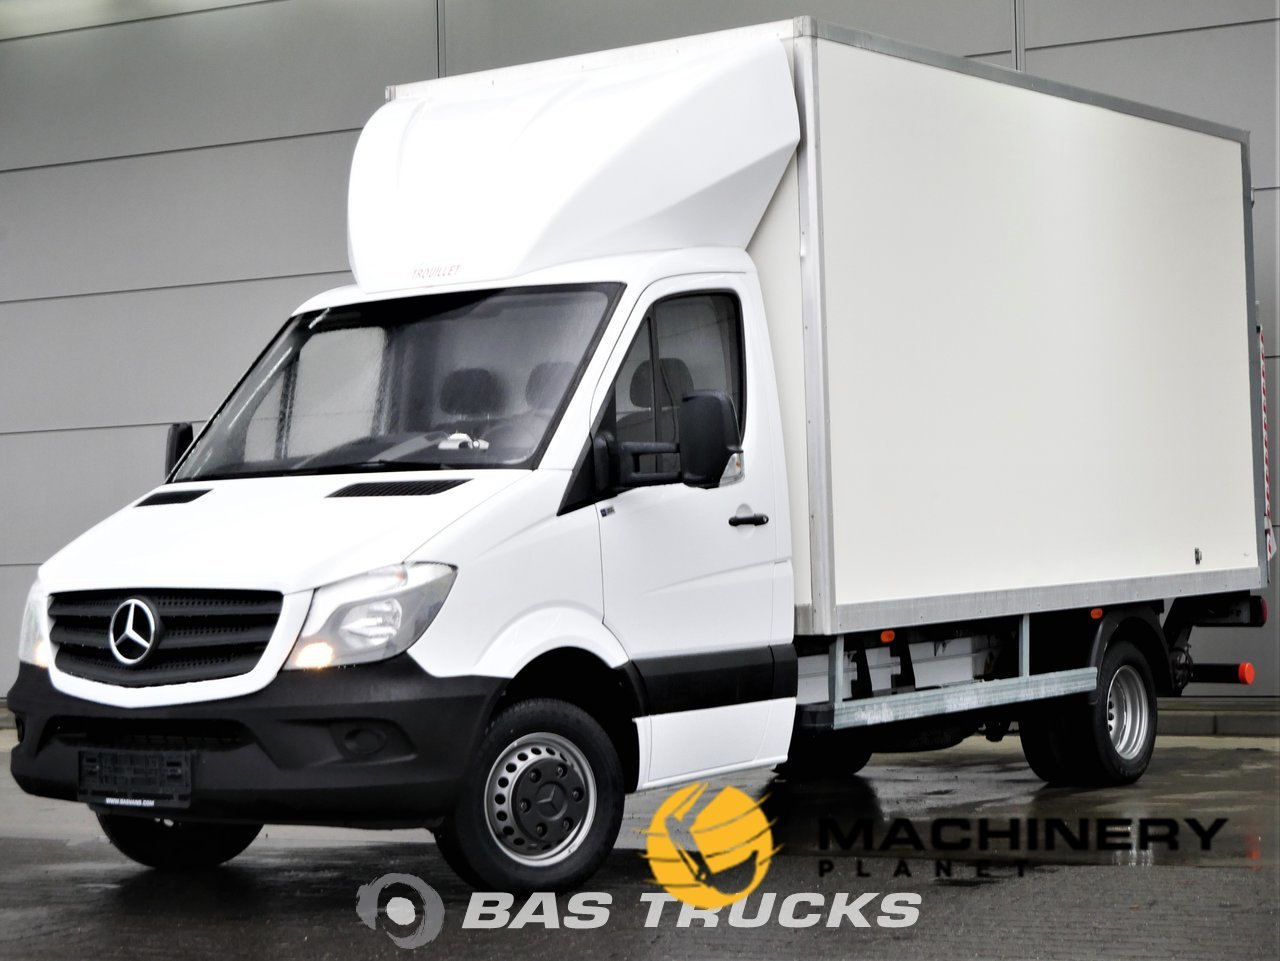 Used-Light-commercial-vehicle-Mercedes-Sprinter-2017_148051_1-1554198370595_5ca32f6291264-1.jpg